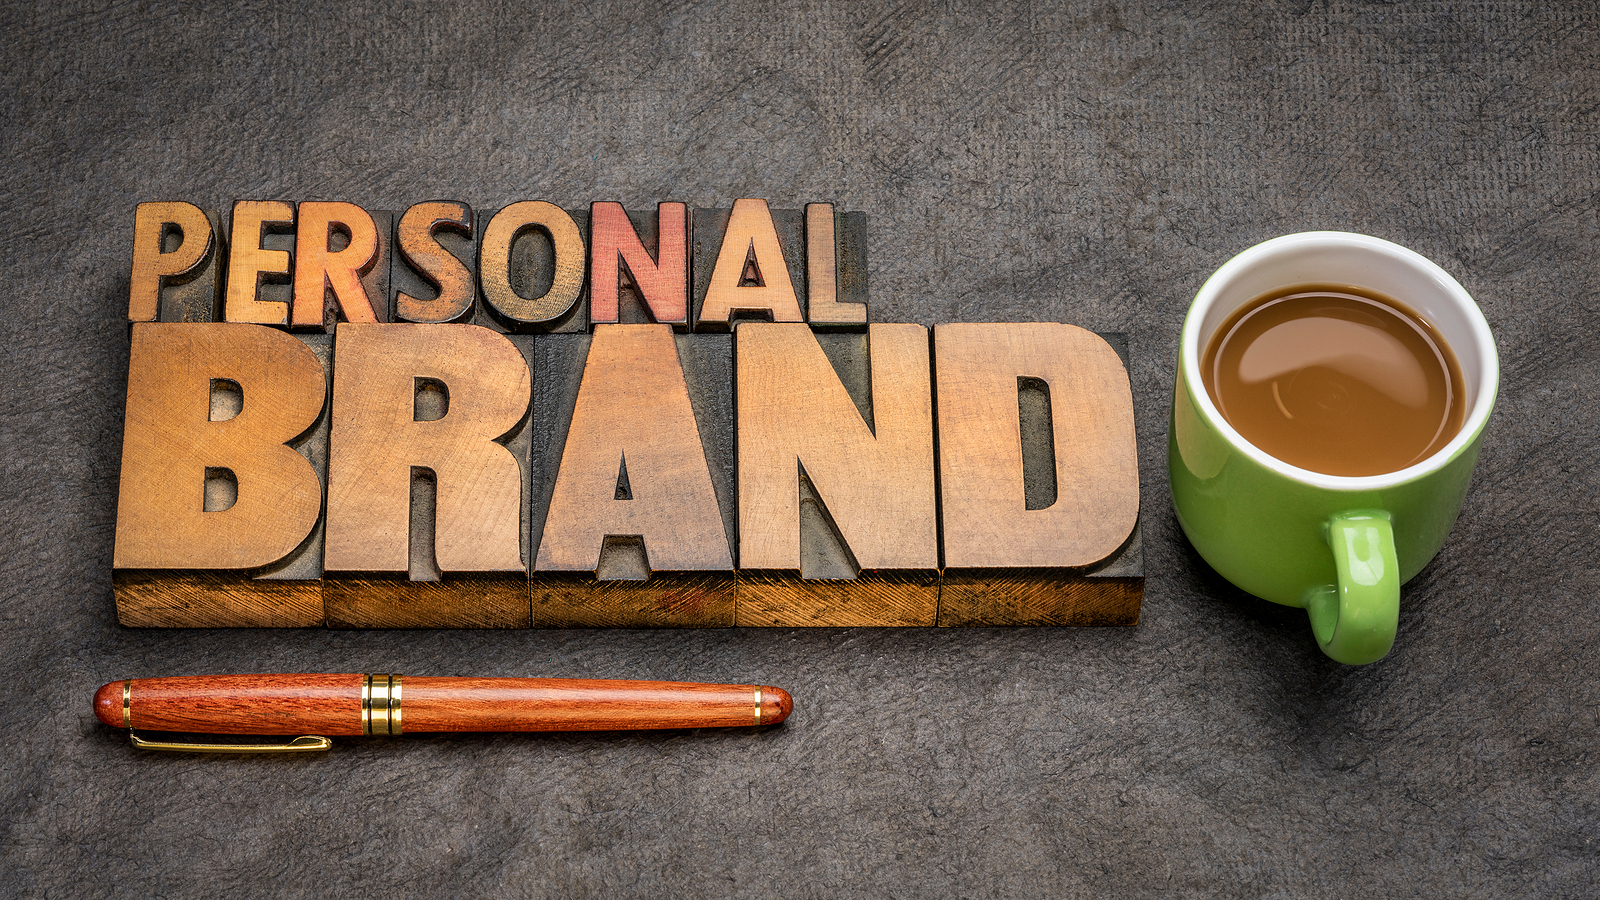 Online images are essential in personal management